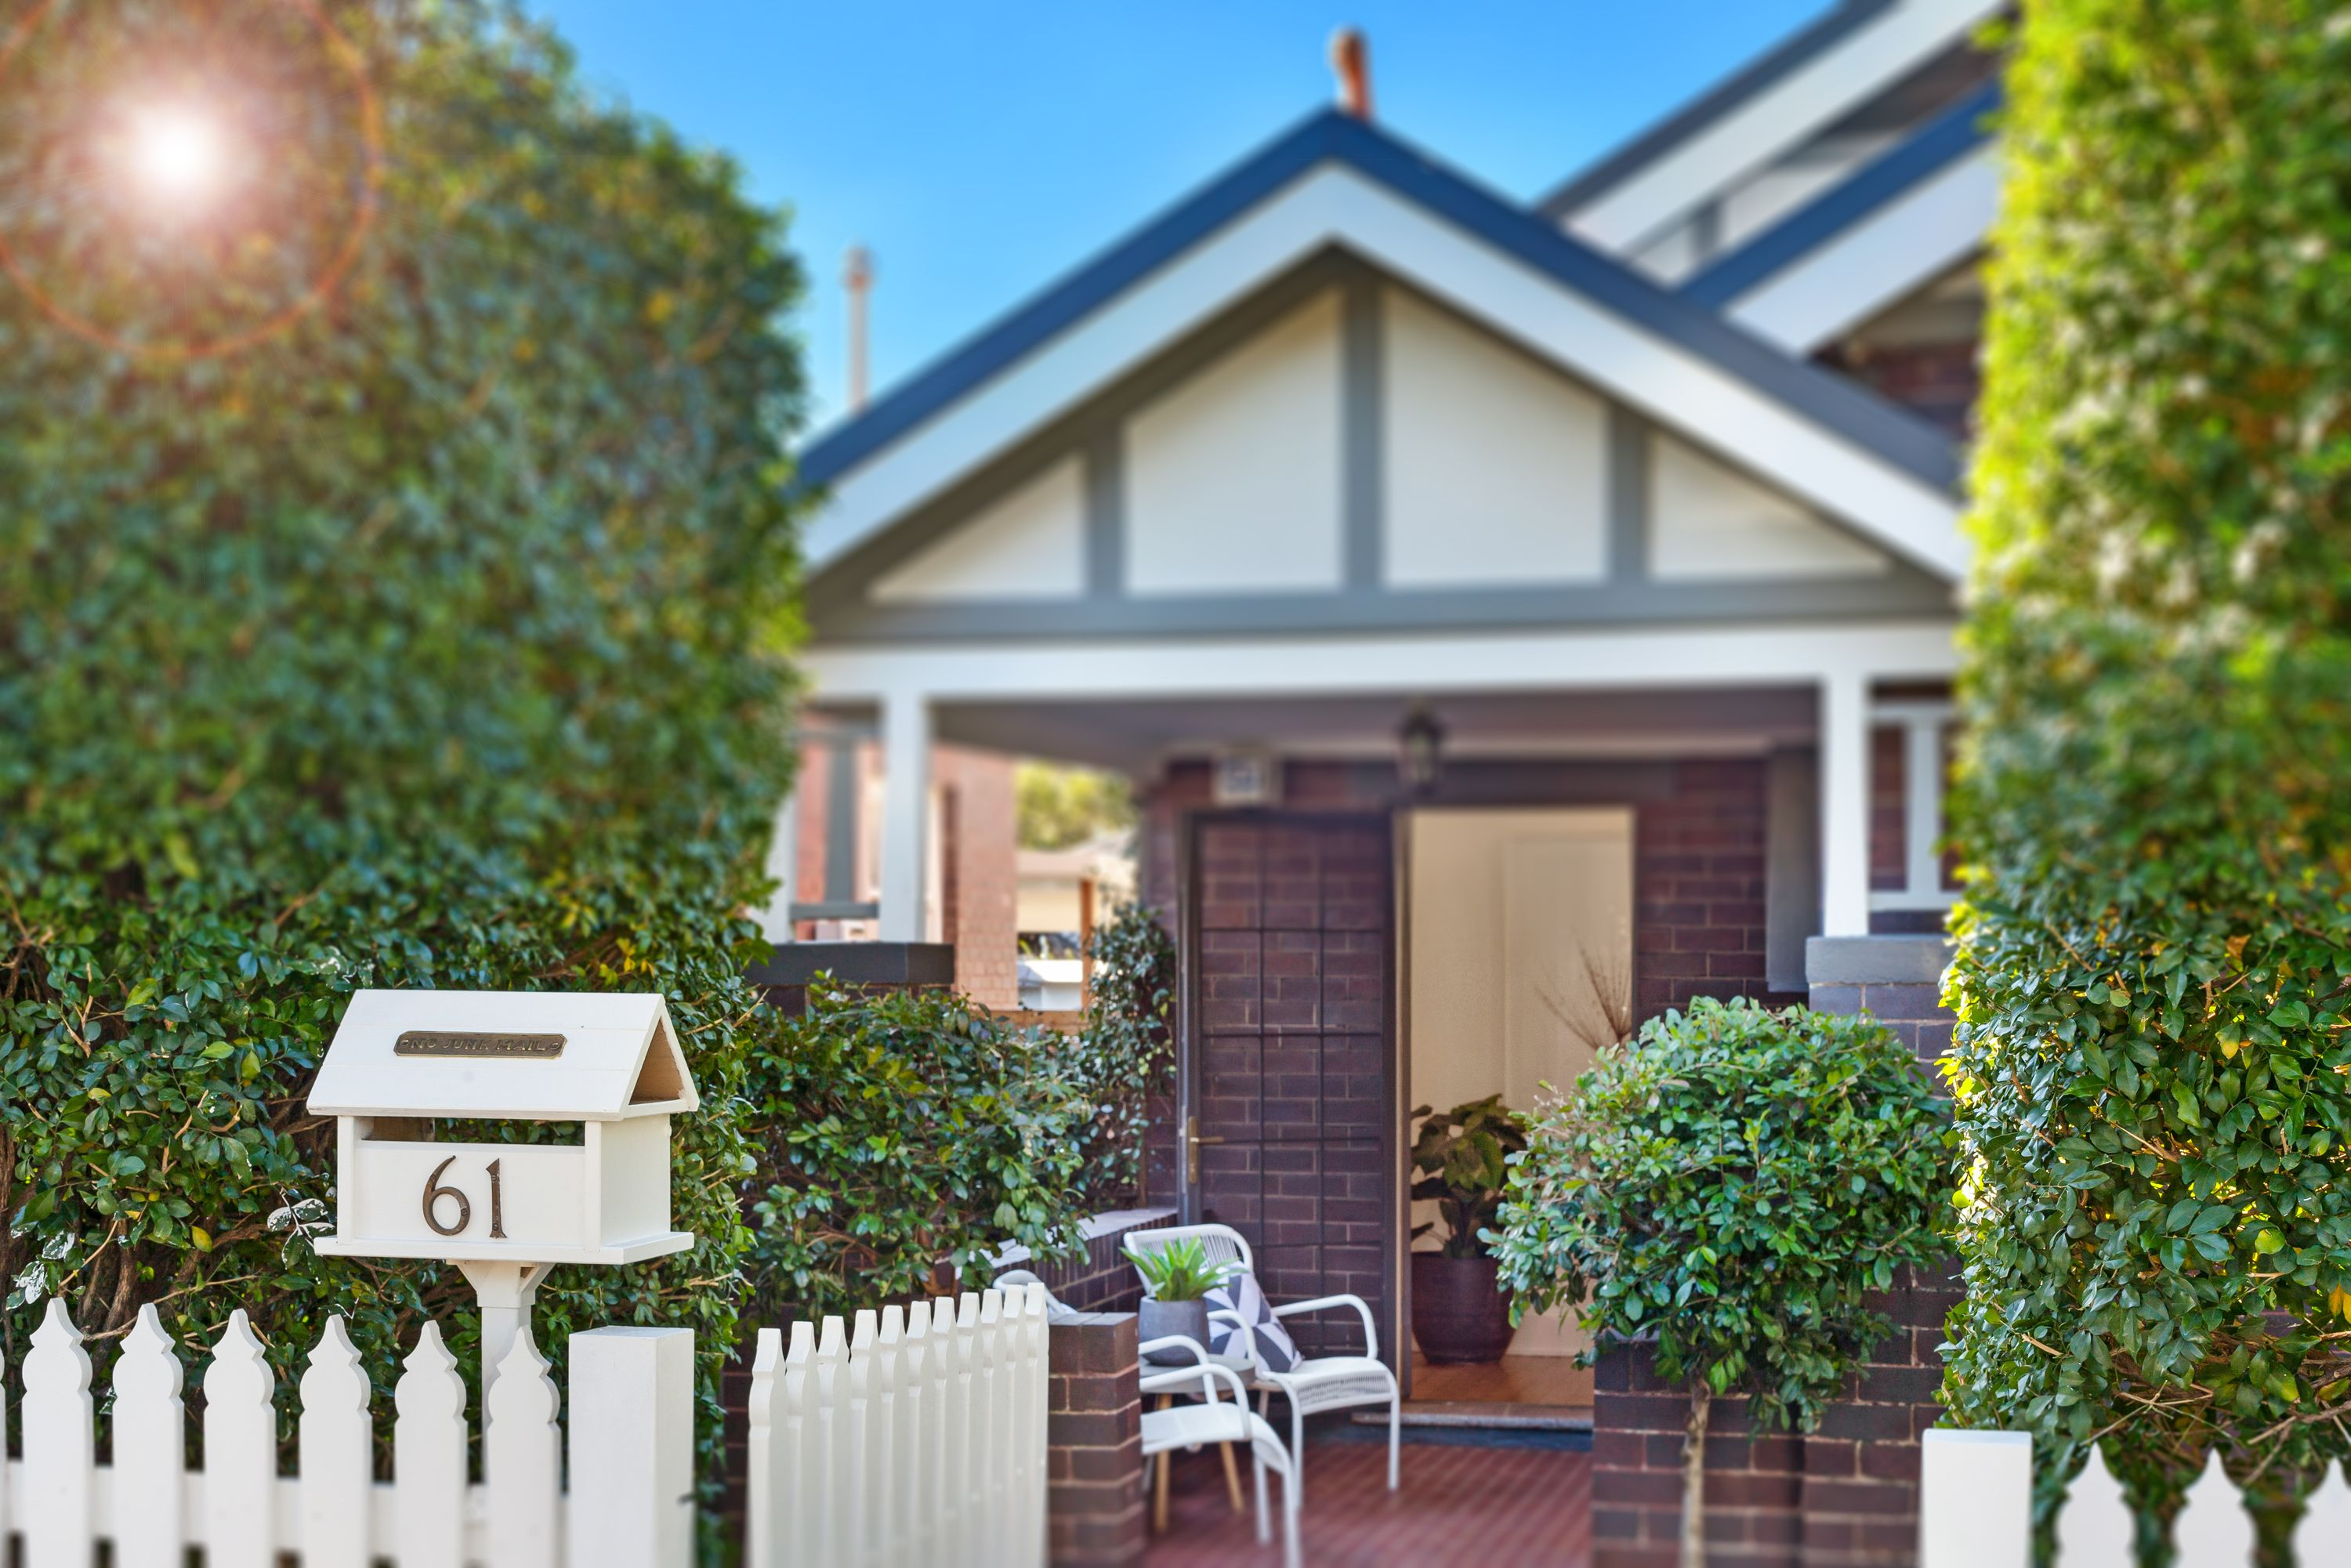 61 Gipps Street Concord 2137